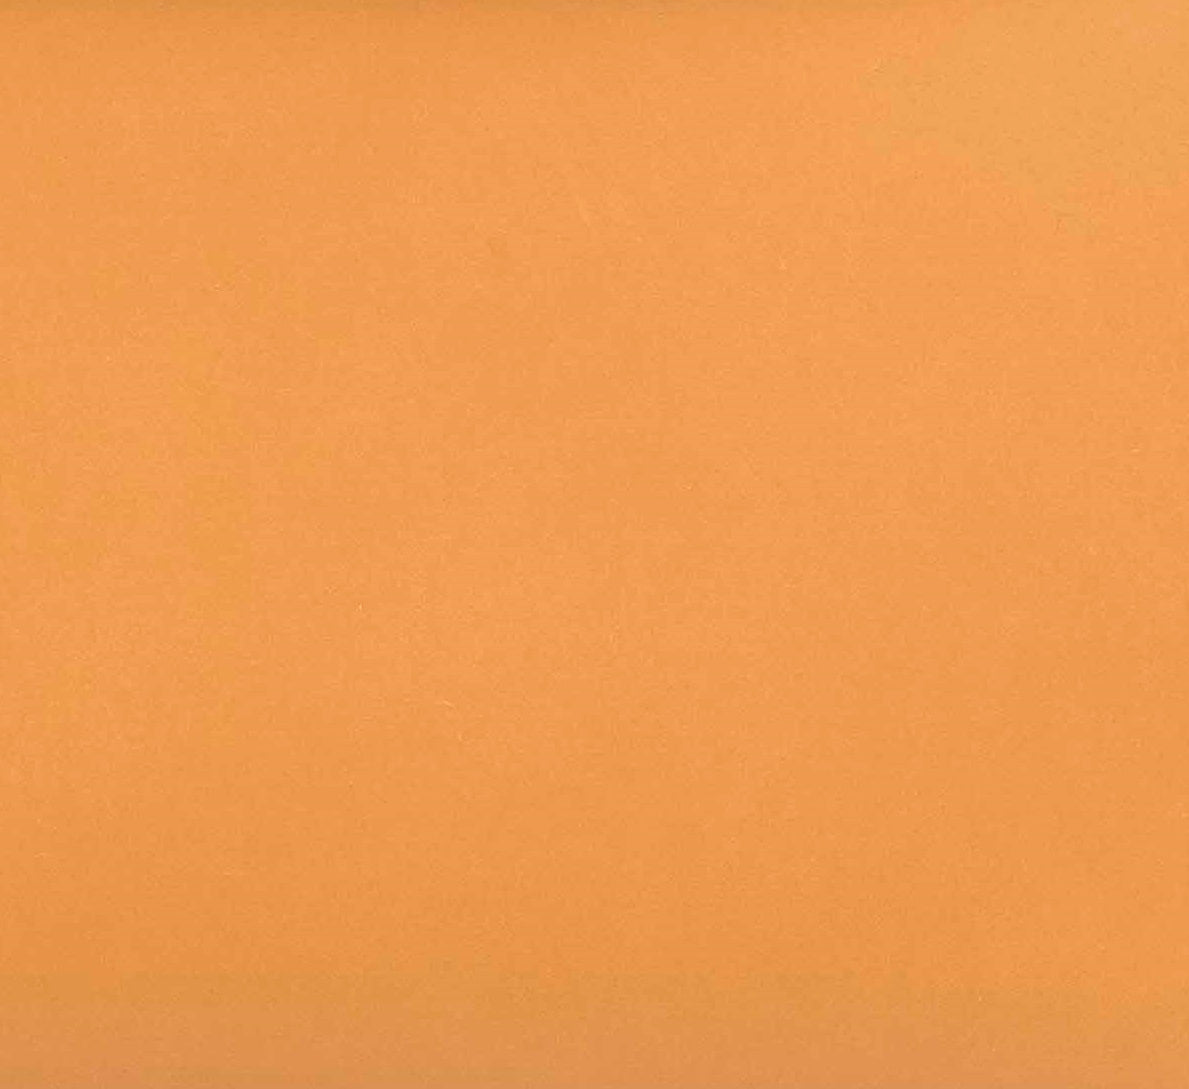 Ultimate Hermes Leathers Guide: What Are Hermes Bags Made Of? hermes vache leather